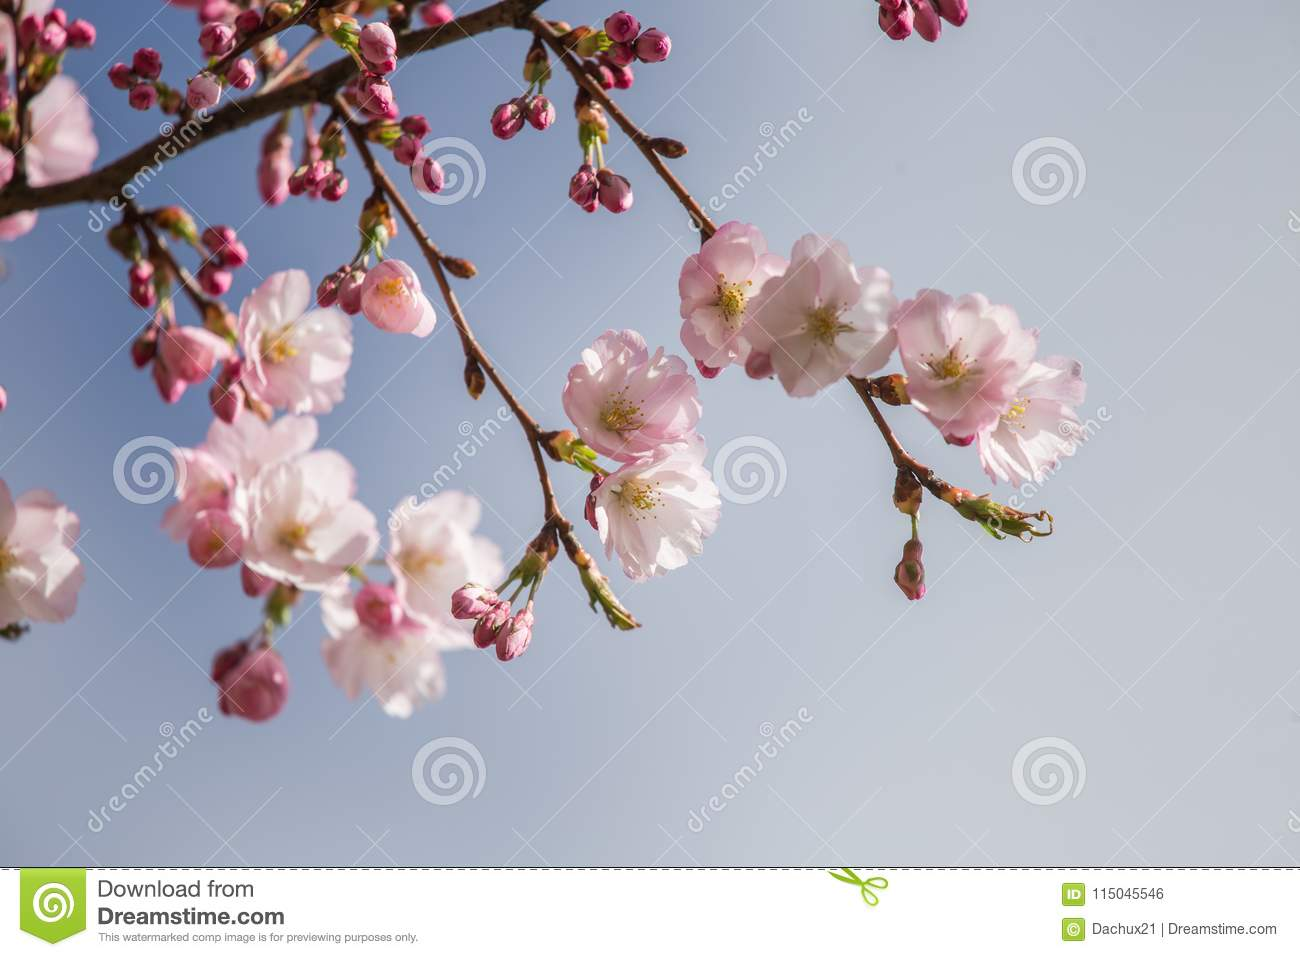 A beautiful sakura cherry blossoms in a sunny spring day. Cherry flowers in natural habitat. Sakura growing in park.